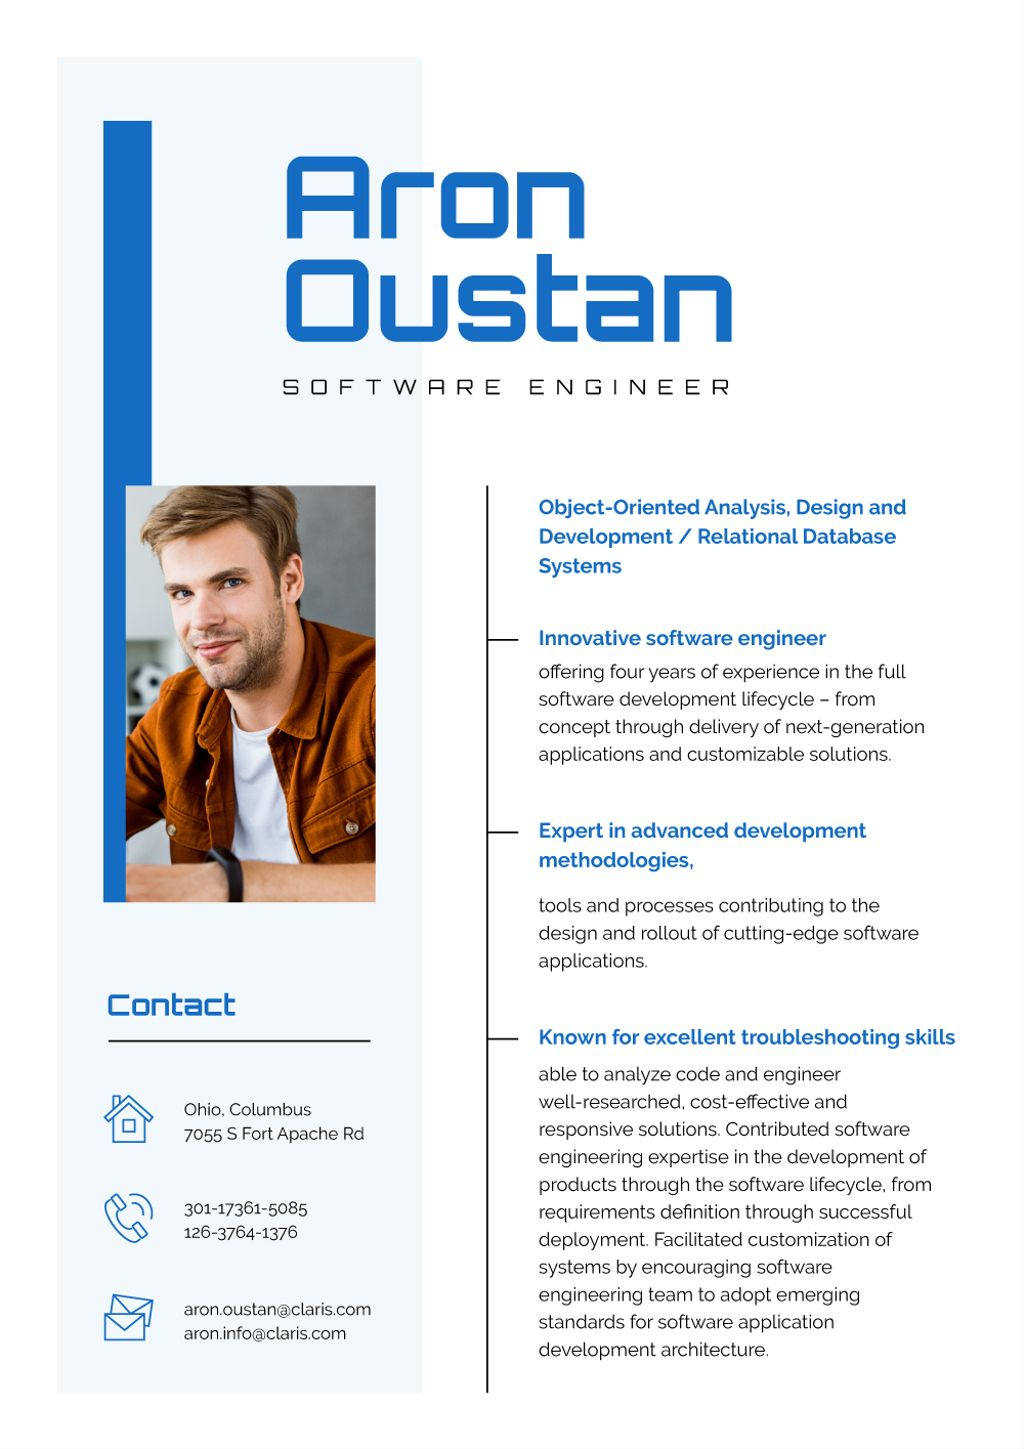 Software Engineer Professional Skills and Experience